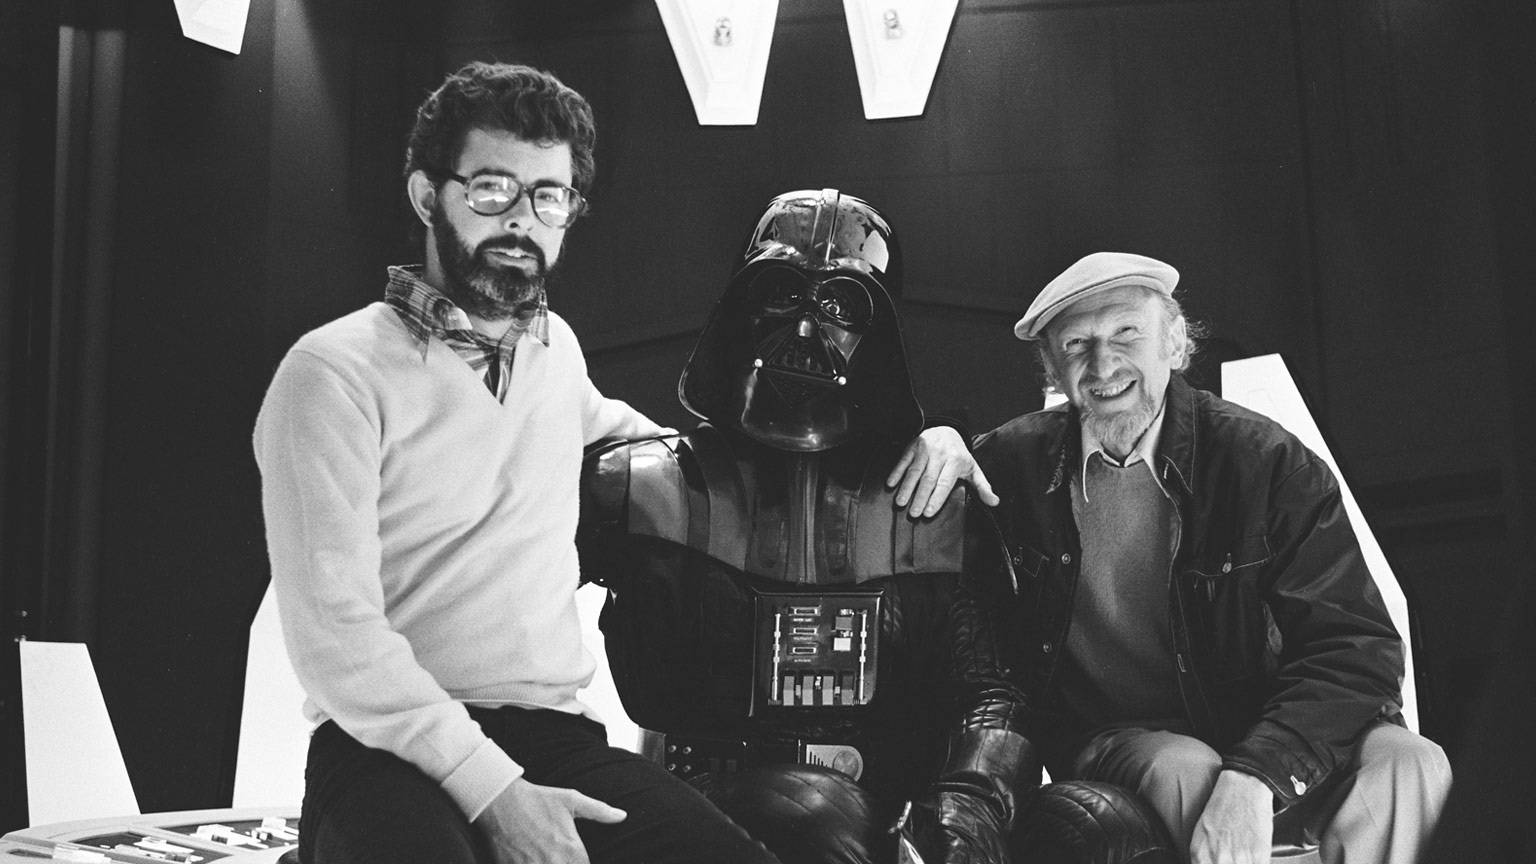 George Lucas behind the scenes of The Empire Strikes Back